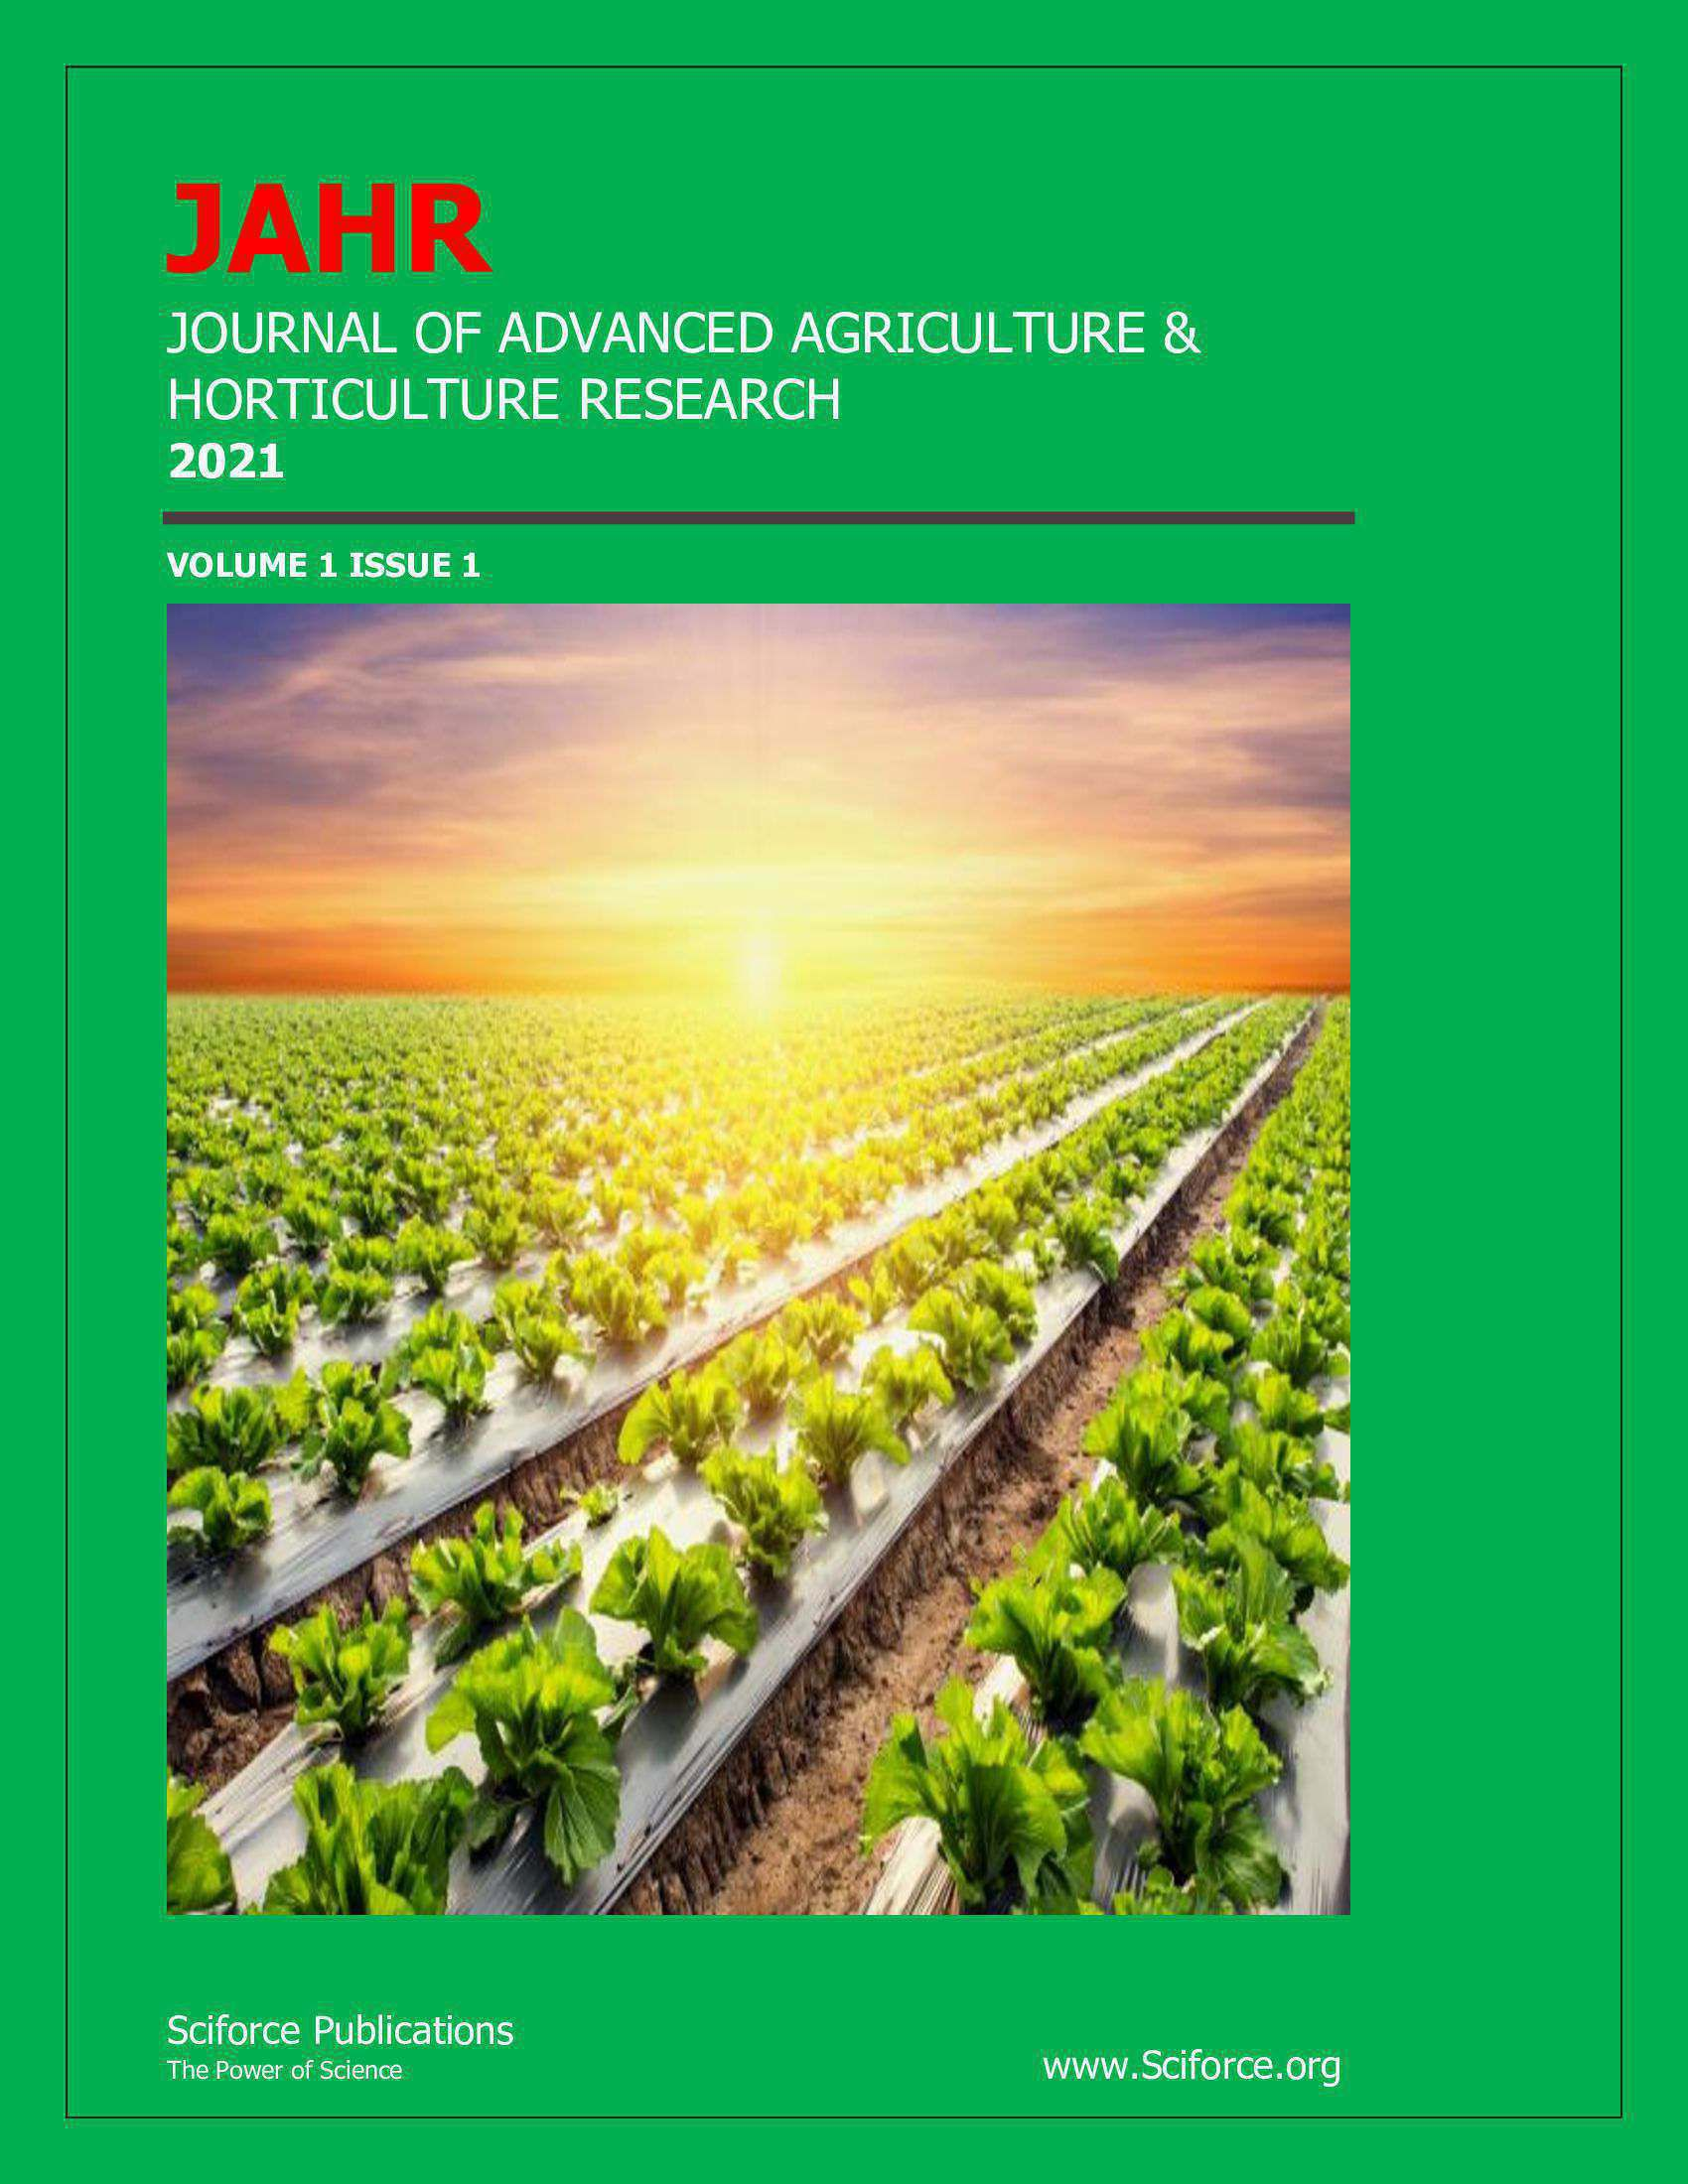 Journal of Advanced Agriculture horticulture Research